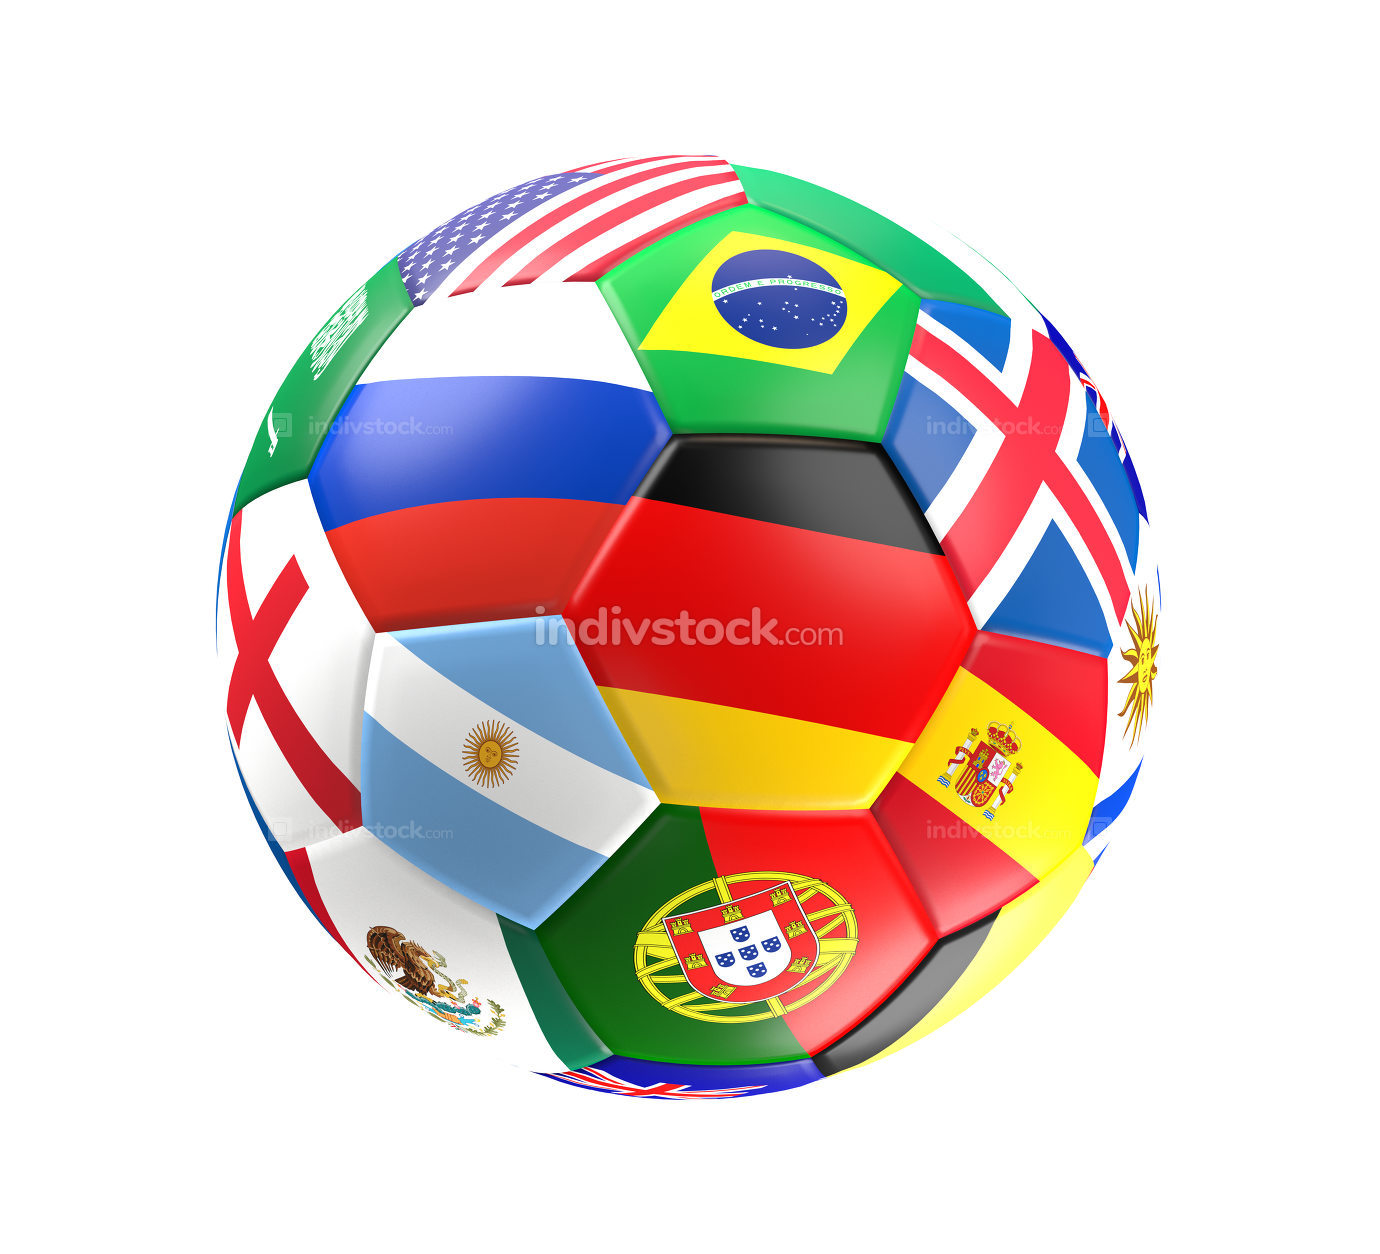 free download: colorful soccer ball in goal 3D rendering